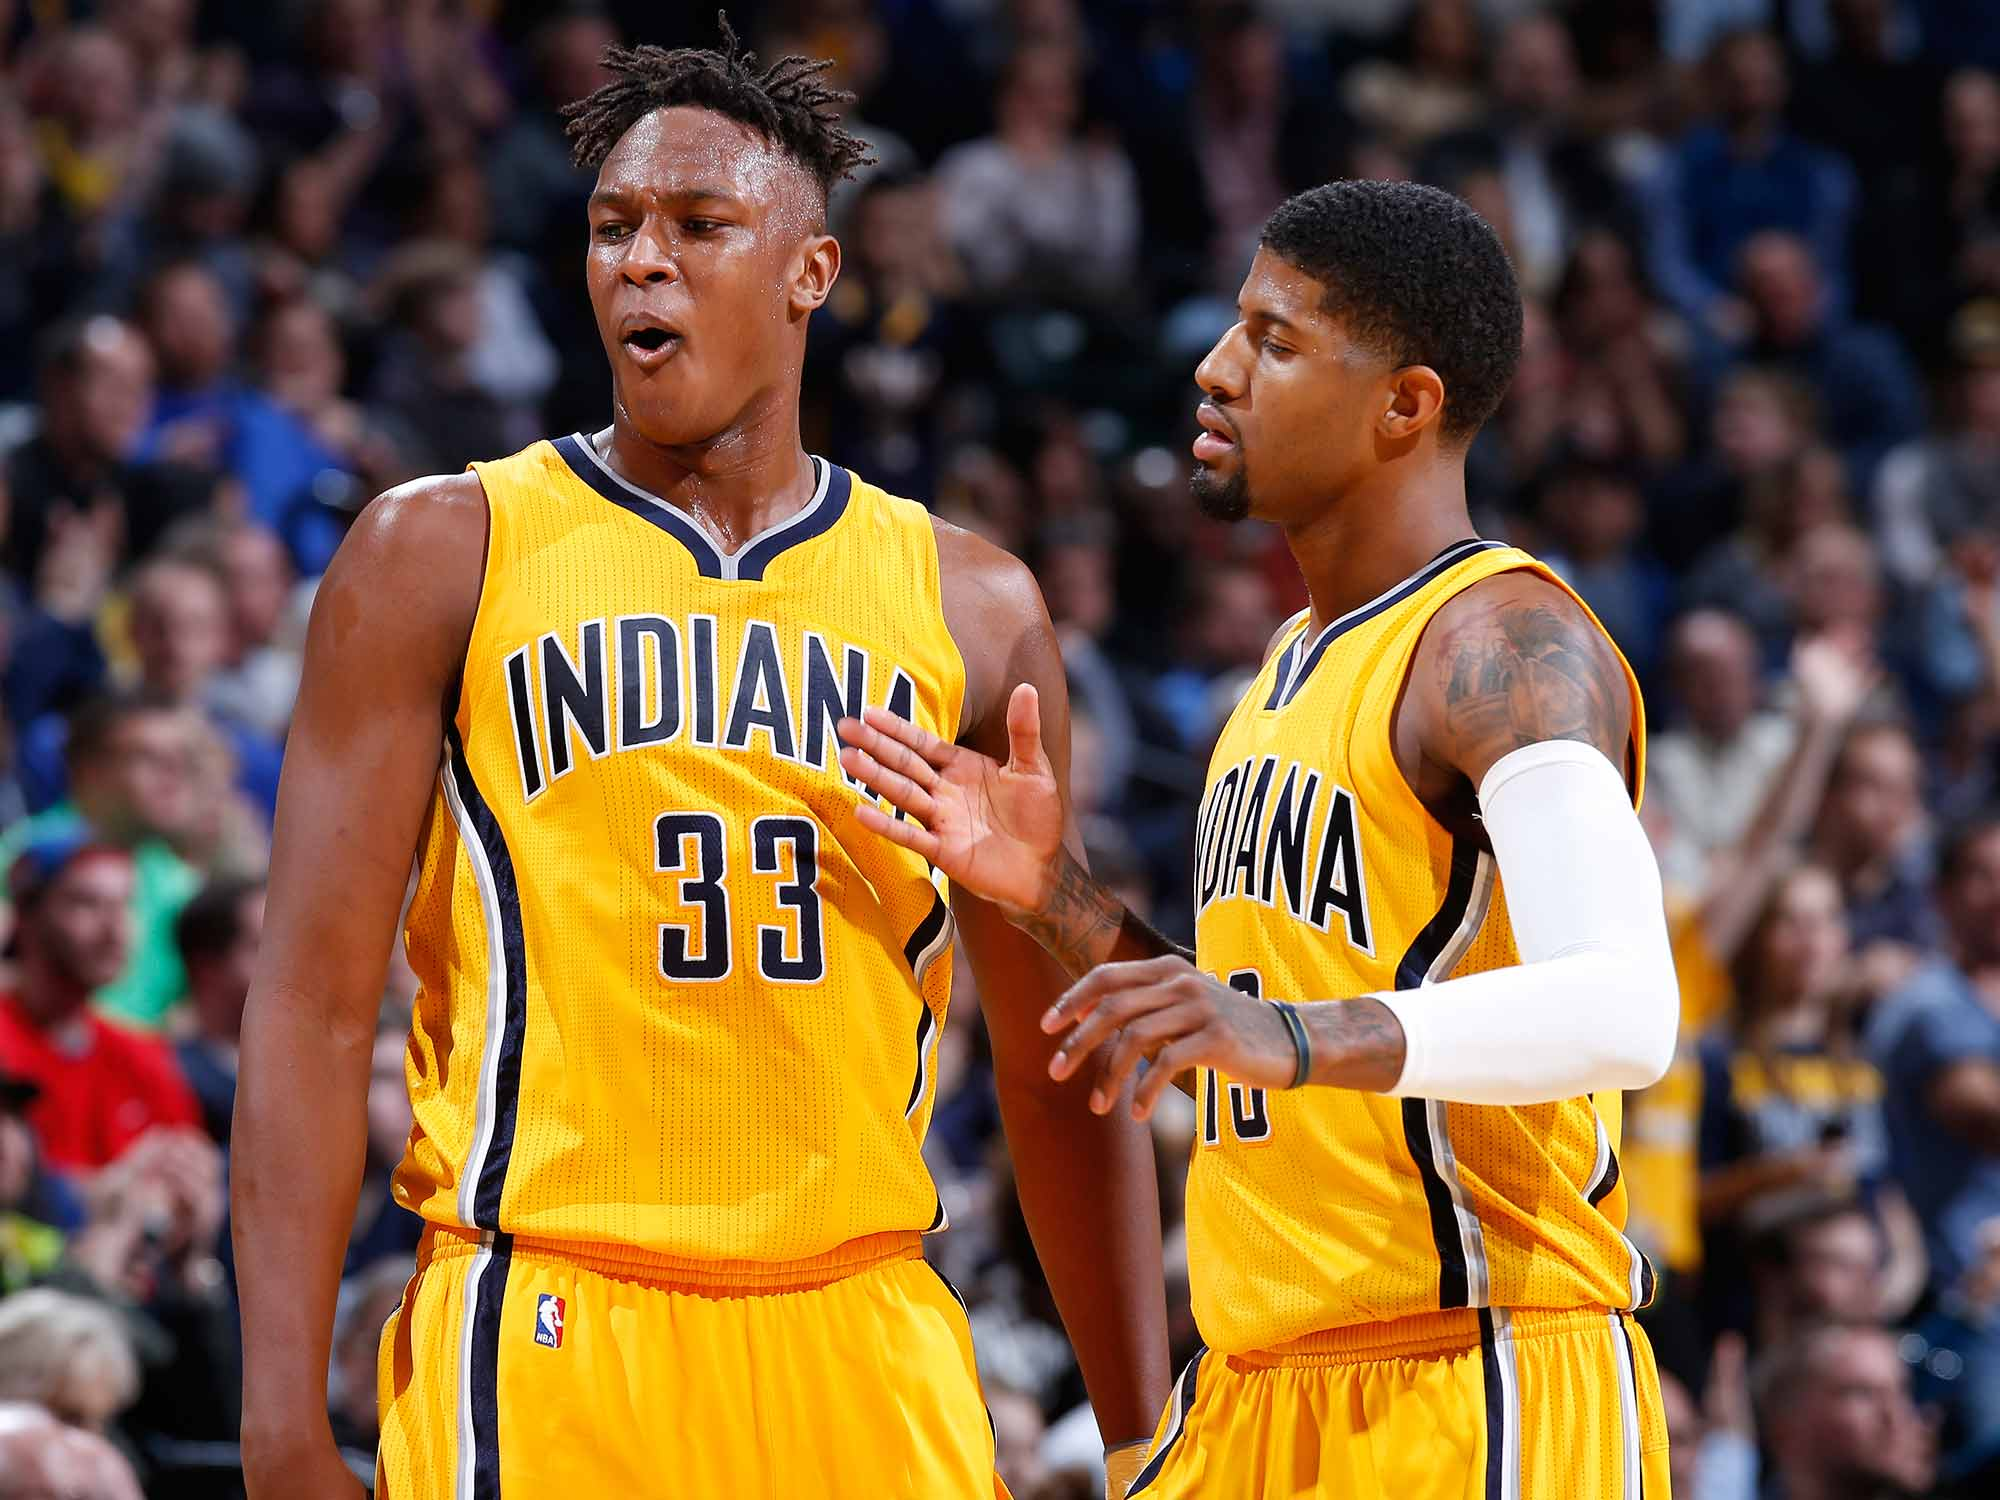 Myles Turner and Paul George